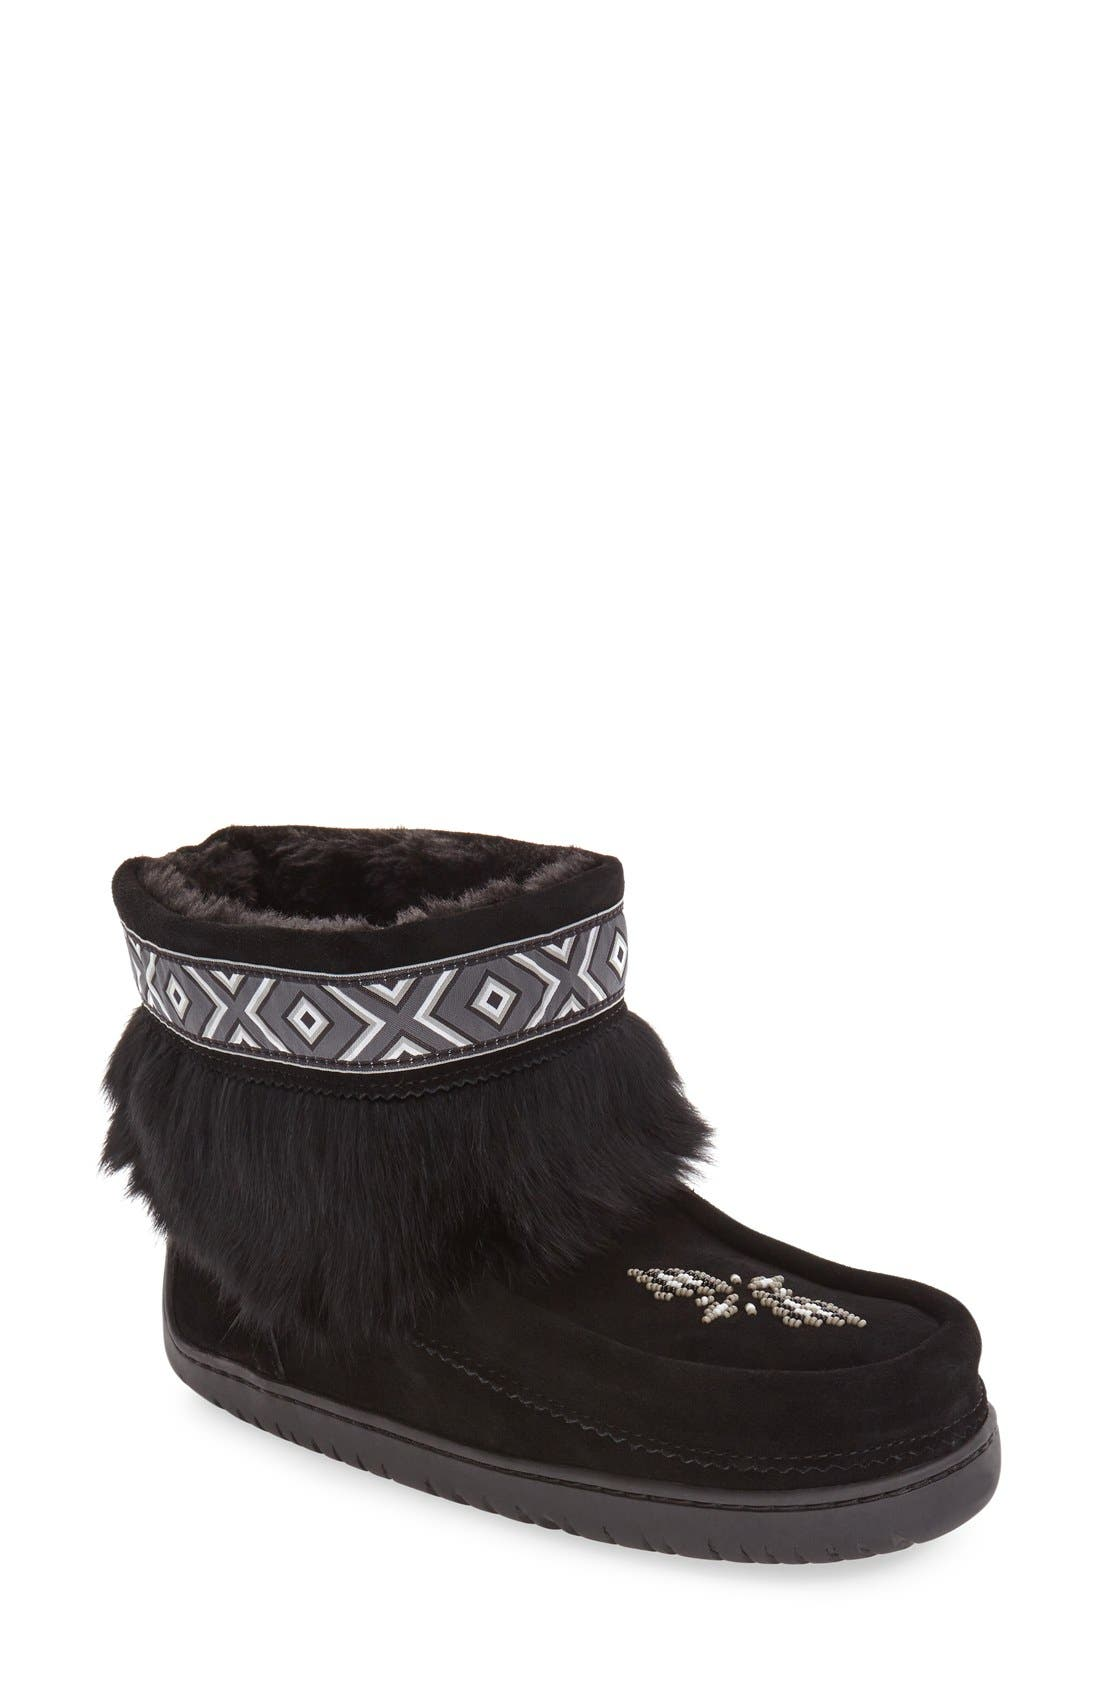 Manitobah Mukluks 'Keewatin' Genuine Shearling and Rabbit Fur Boot (Women)